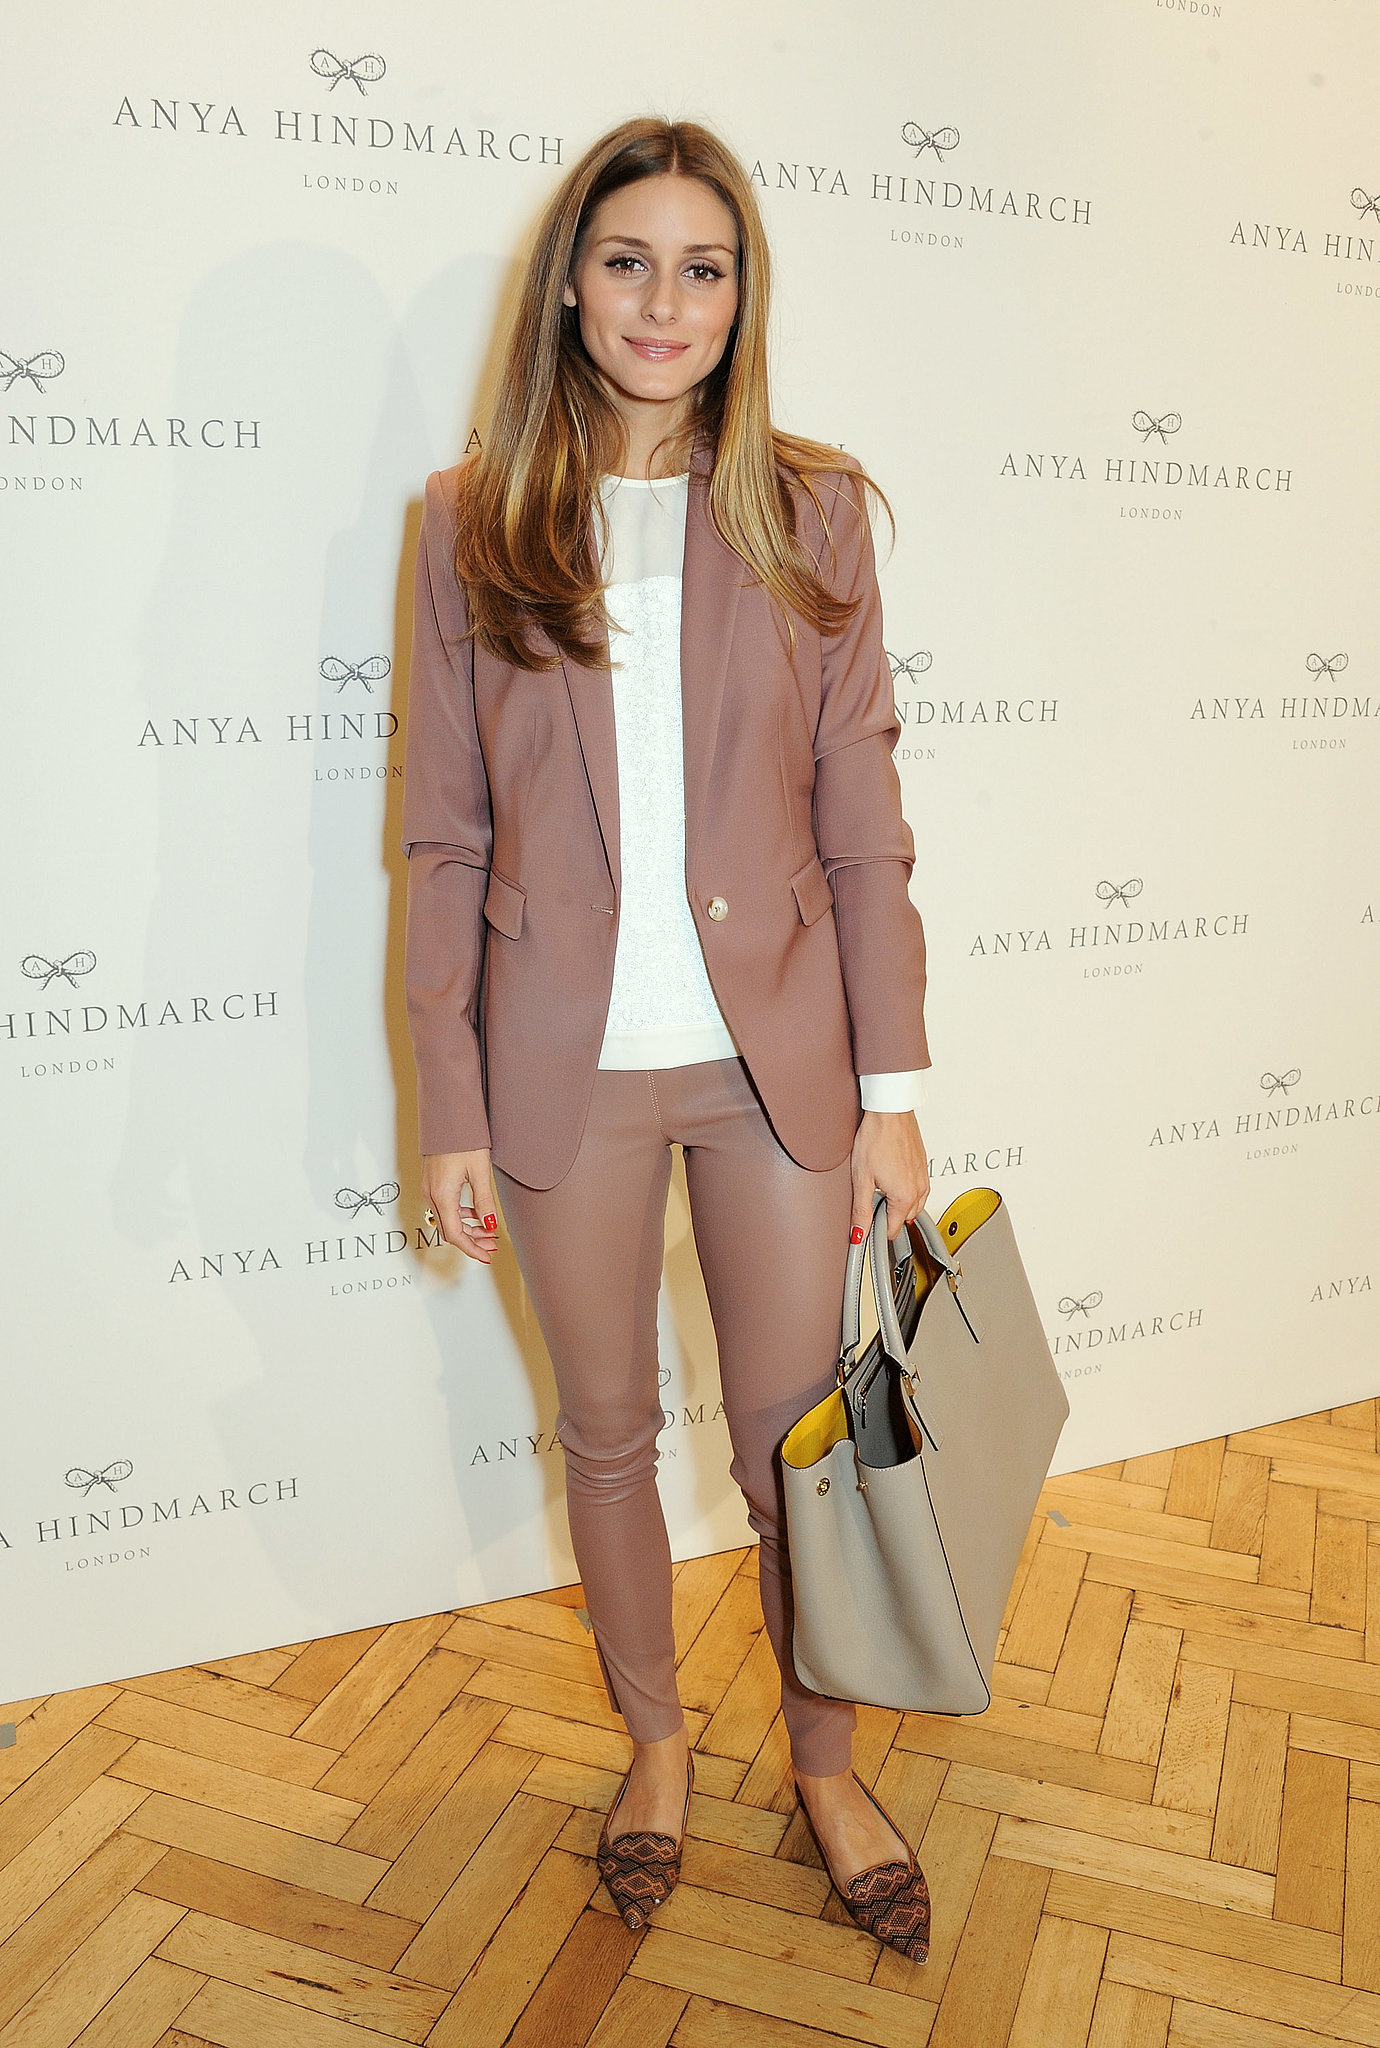 At Anya Hindmarch, Olivia took a neutral approach, matching a sleekly tailored blazer with coordinating leather pants.